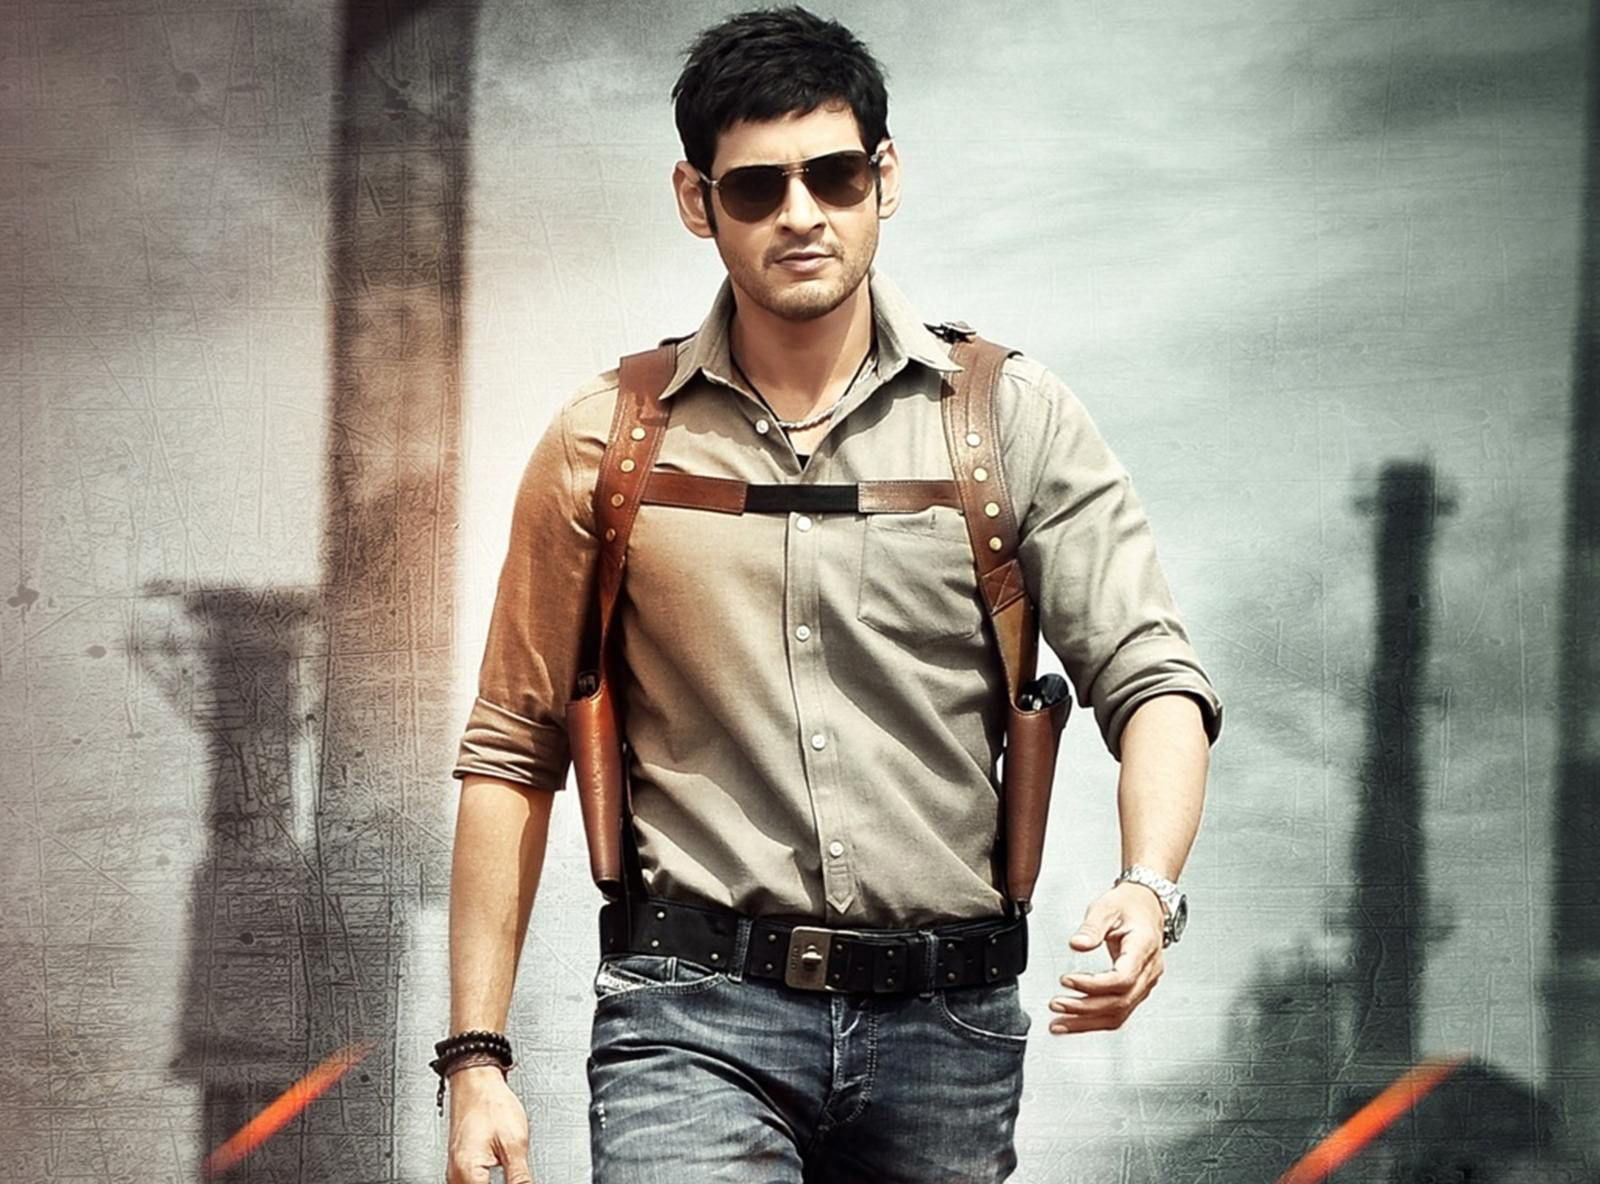 Mahesh-Babu-In-Aagadu-2014-Movie-Poster-Images